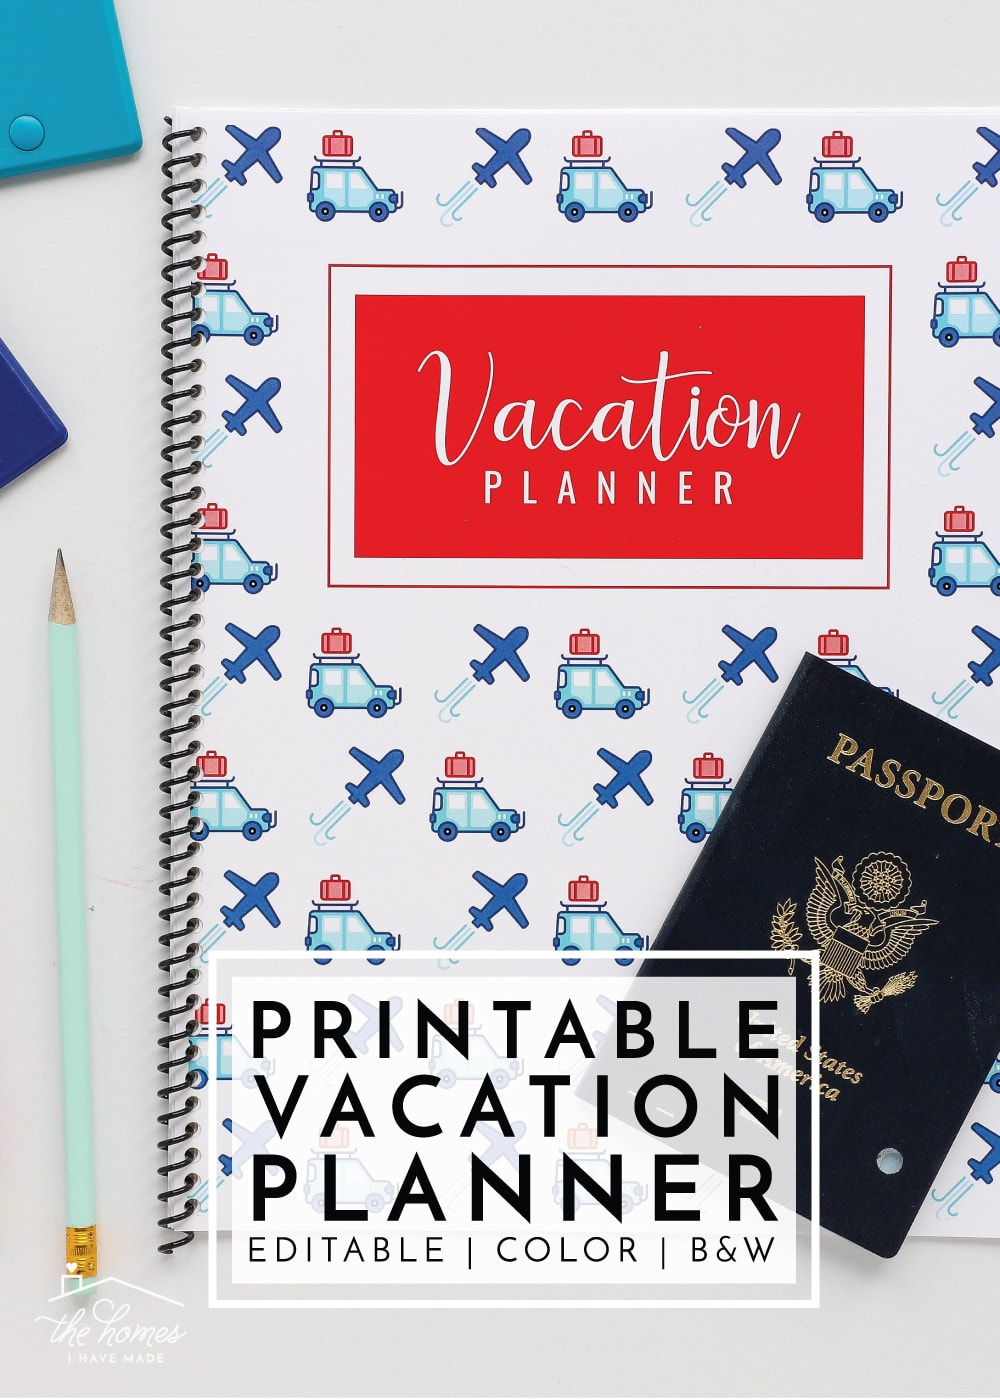 photo regarding Vacation Planner Printable referred to as Fresh in the direction of The Enterprise Toolbox: Printable Trip Planner